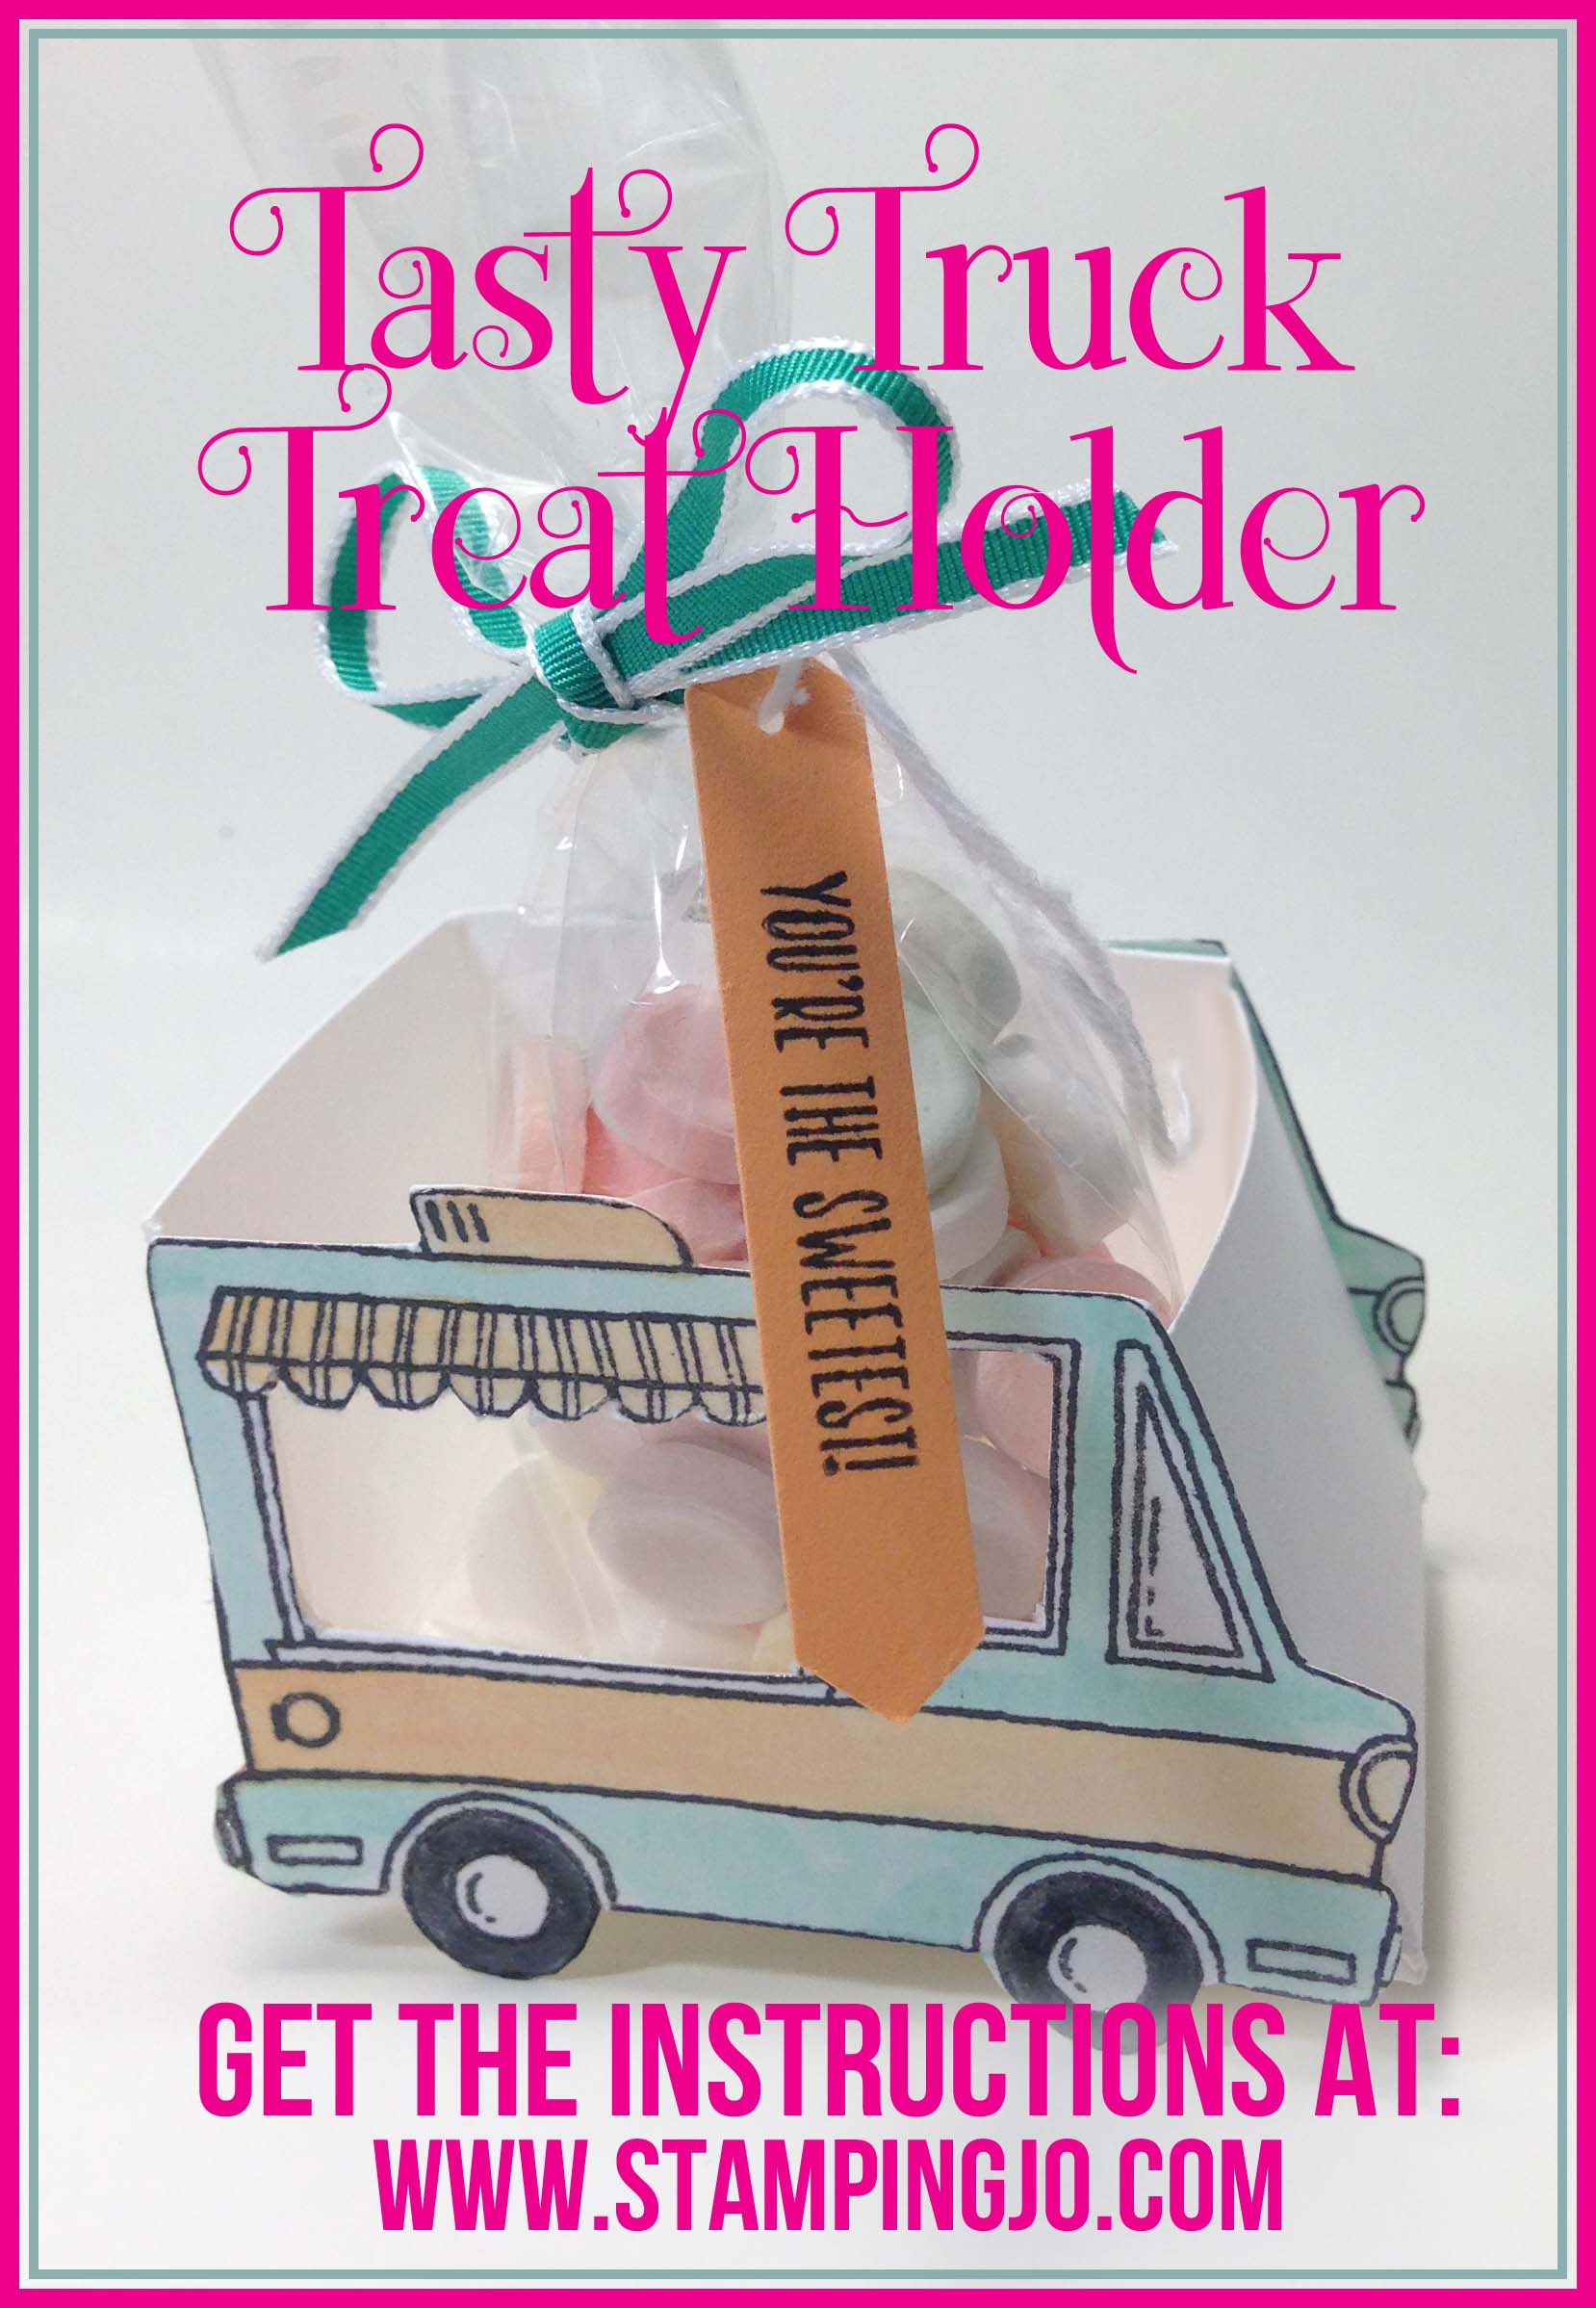 Tasty Truck treat box instructions, Tasty Truck Treat Holder Instructions